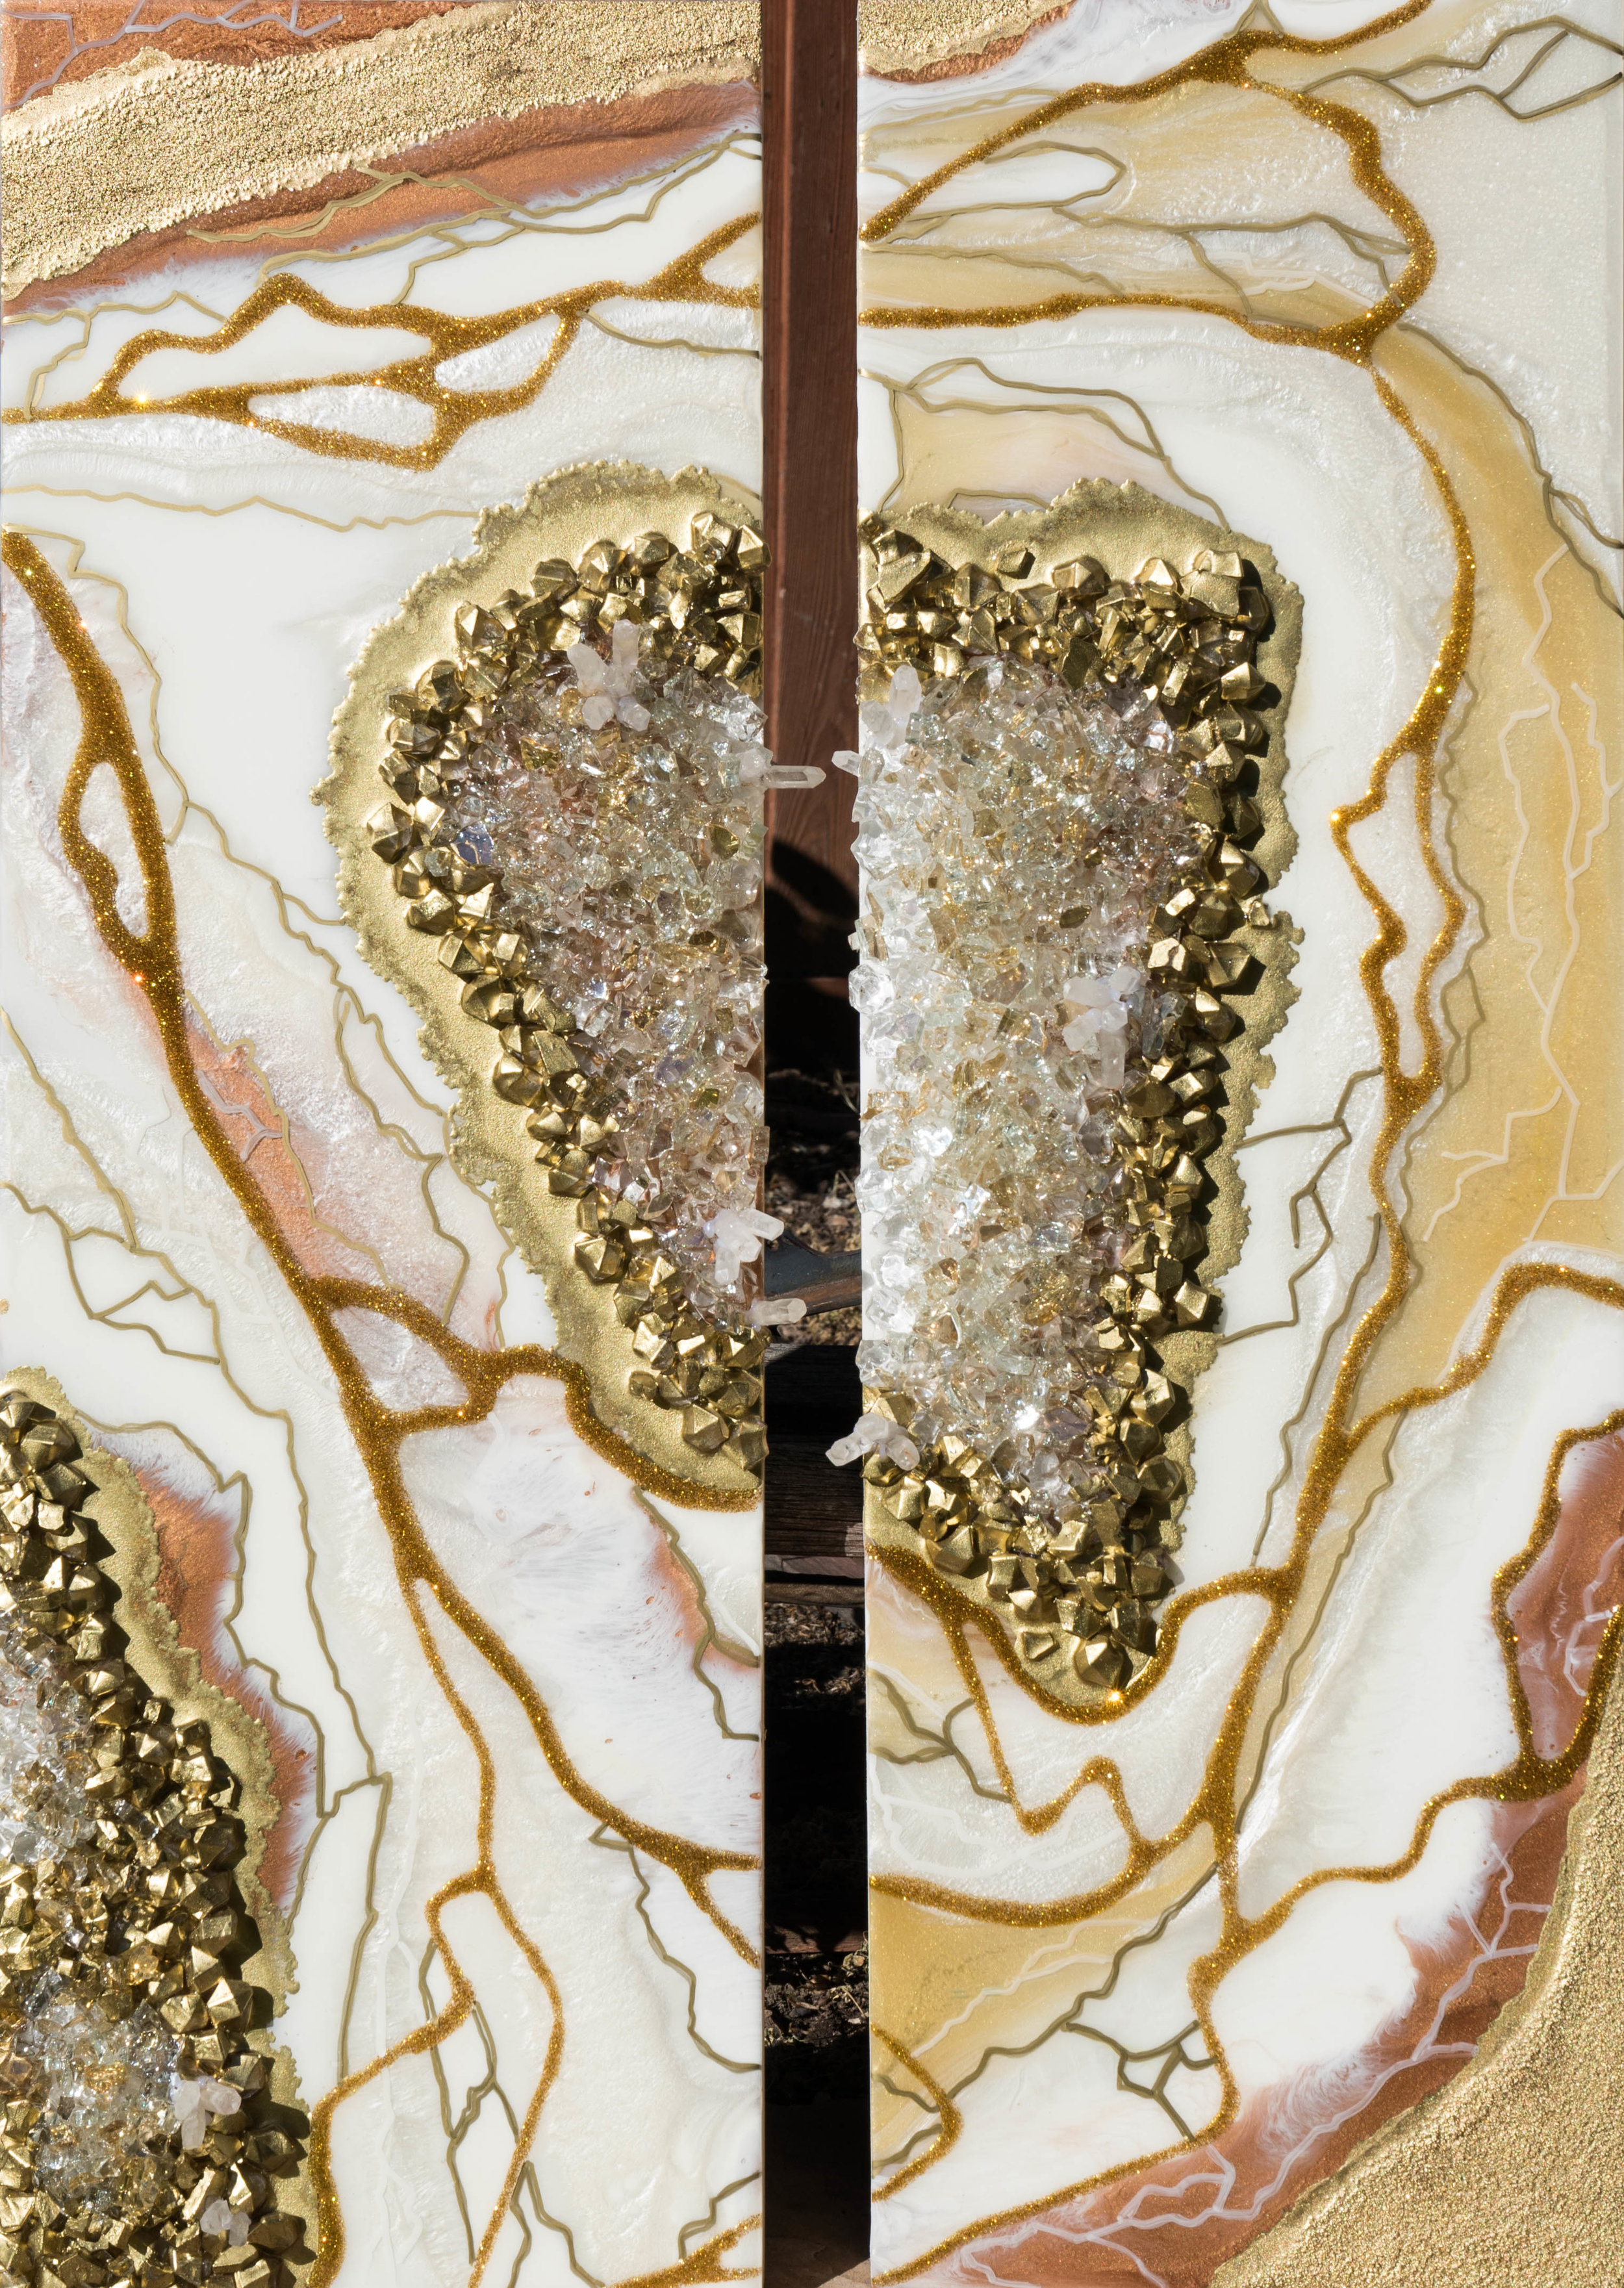 MO'OREA (DIPTYCH)  24 X 36 • CRYSTALS, GLITTER, RESIN ON PANEL •  $1,200